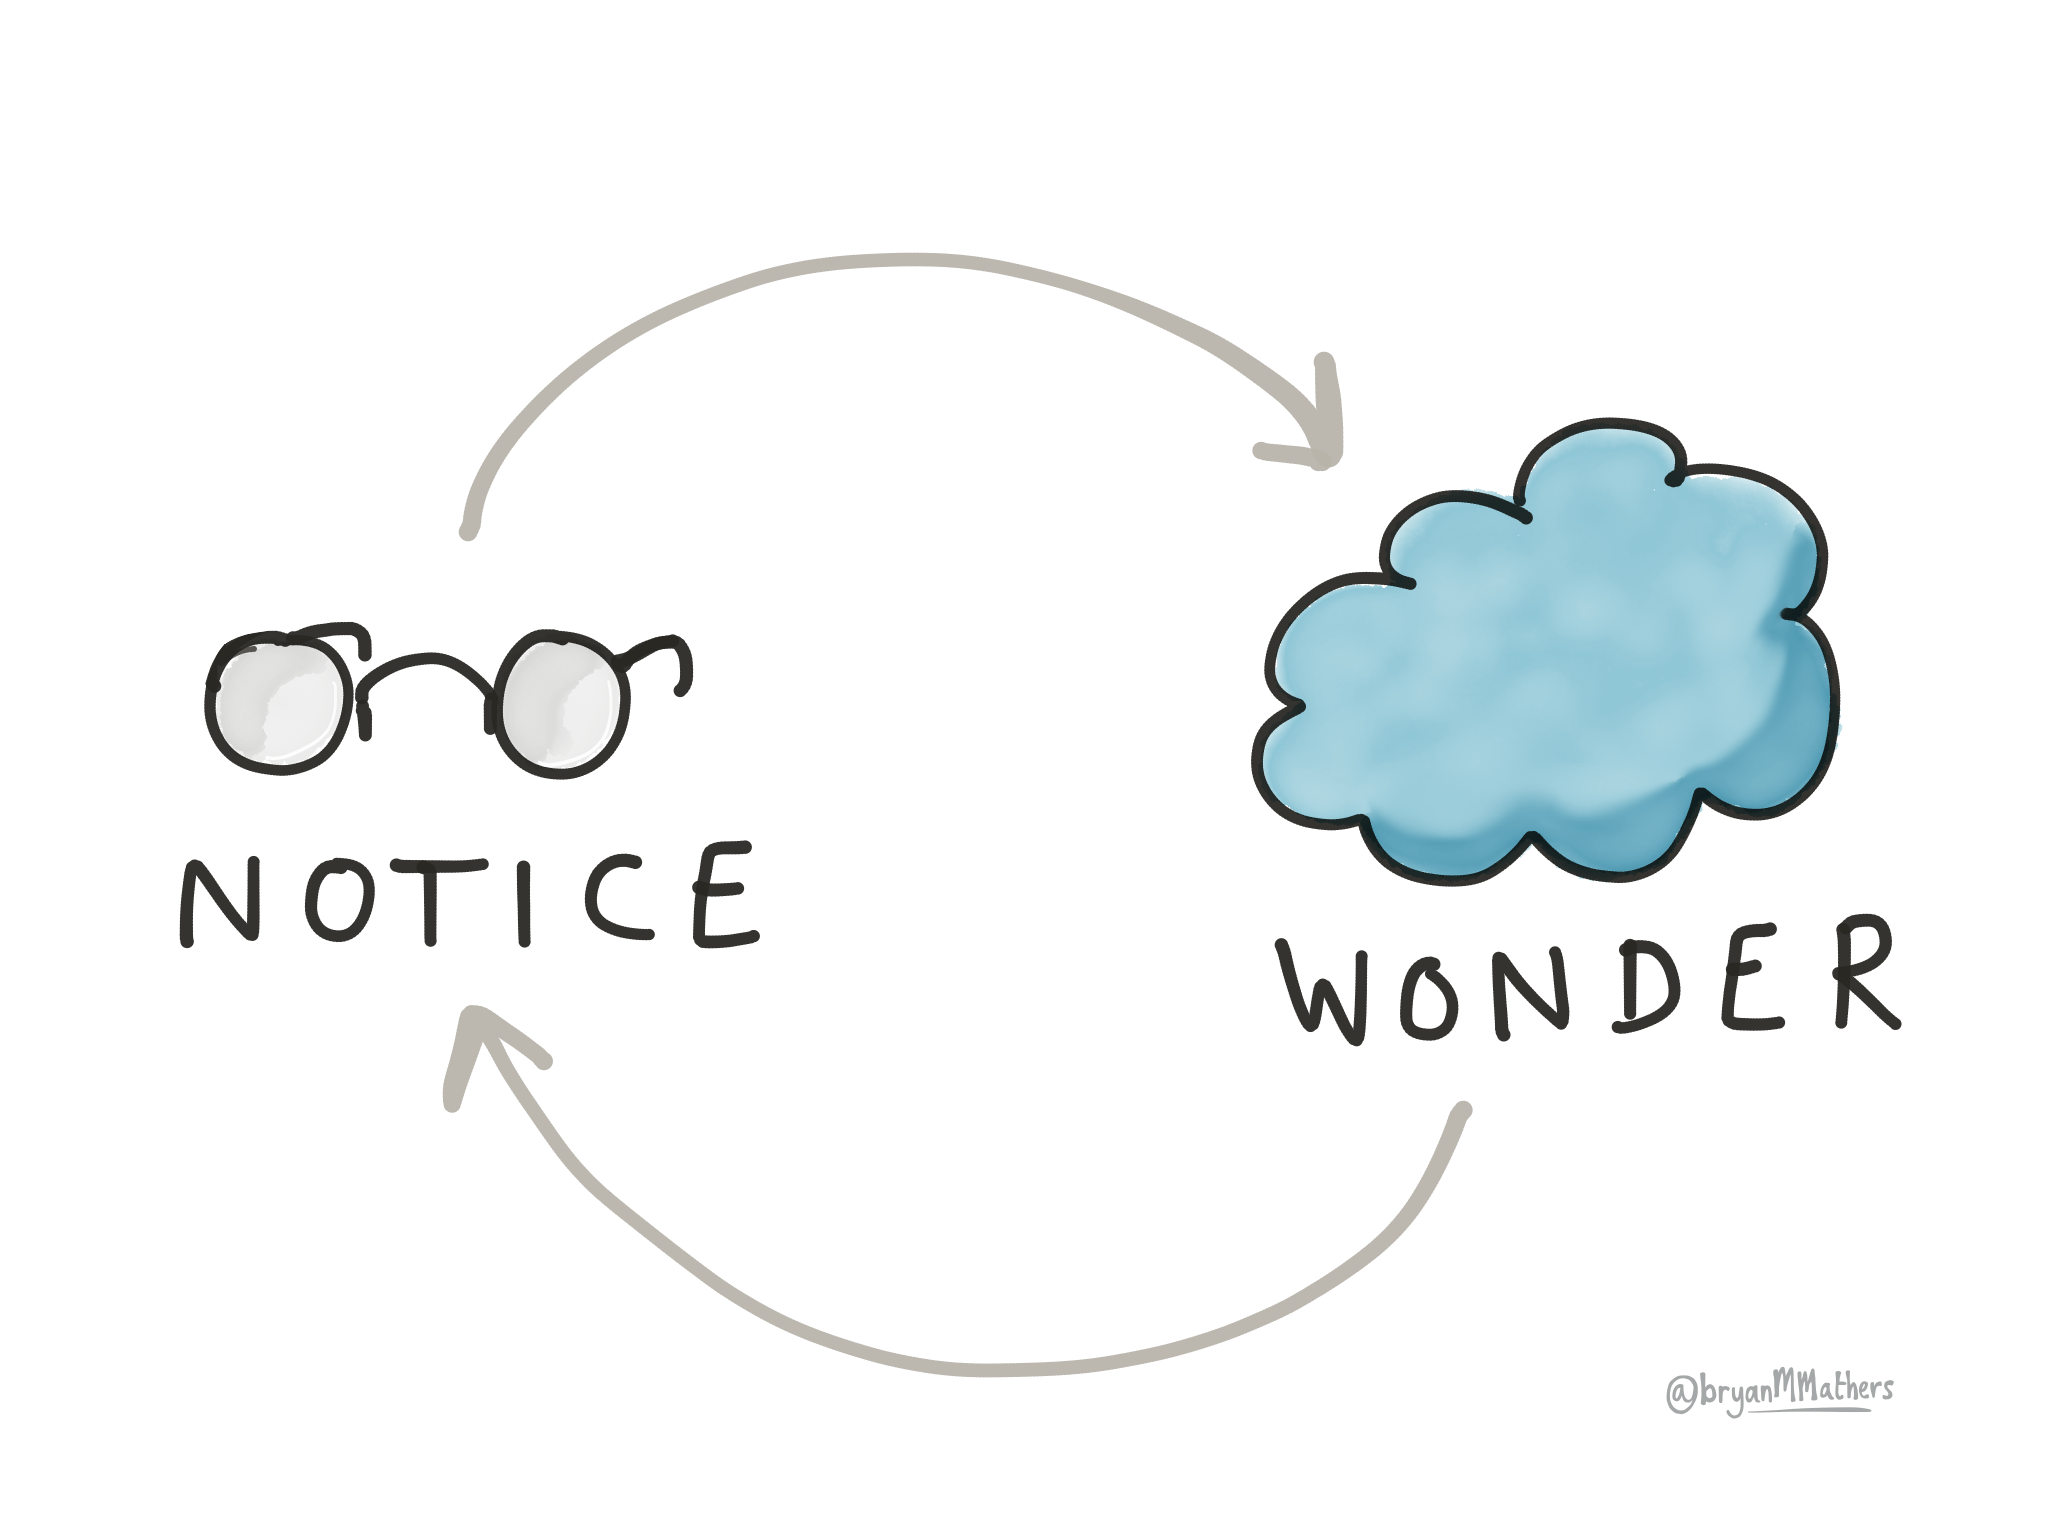 Notice and wonder